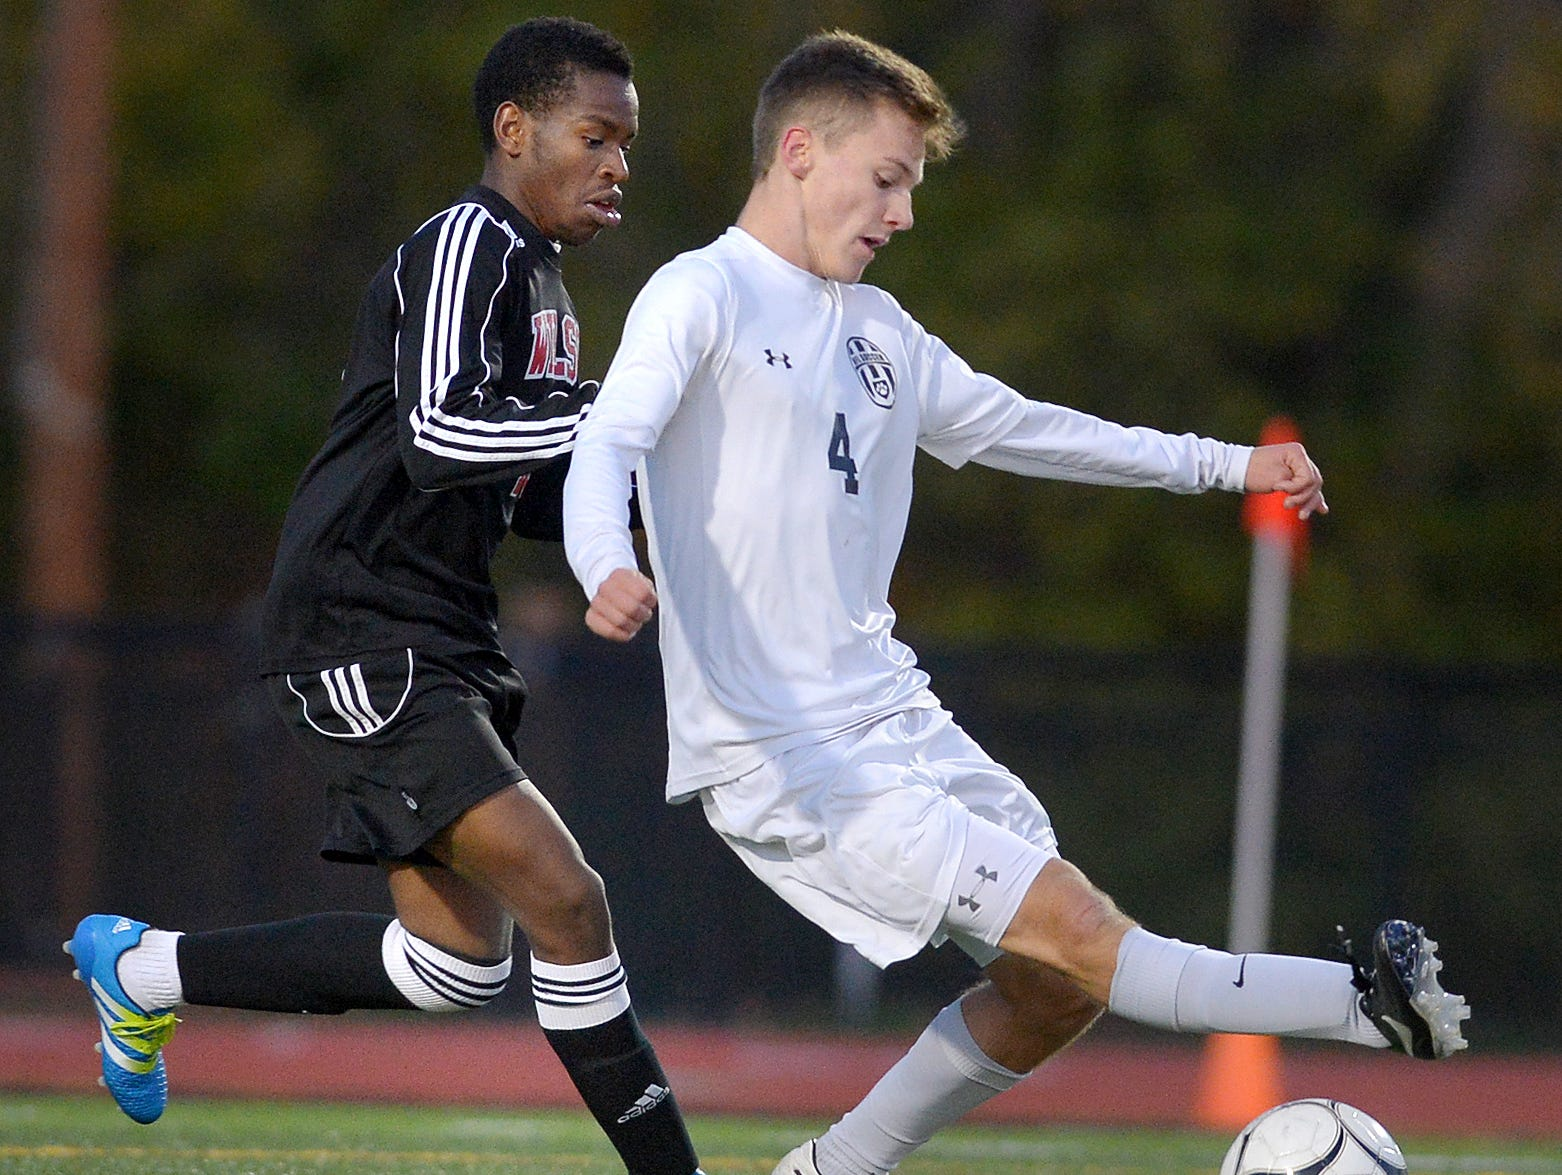 HF-L's David Goetz, right, shields the ball from Wilson's Ali Osman during the Section V Class A2 final played at Hilton High School on Oct. 28, 2016. No. 1 seed Honeoye Falls-Lima won the Class A2 title with a 4-0 win over No. 2 seed Wilson.